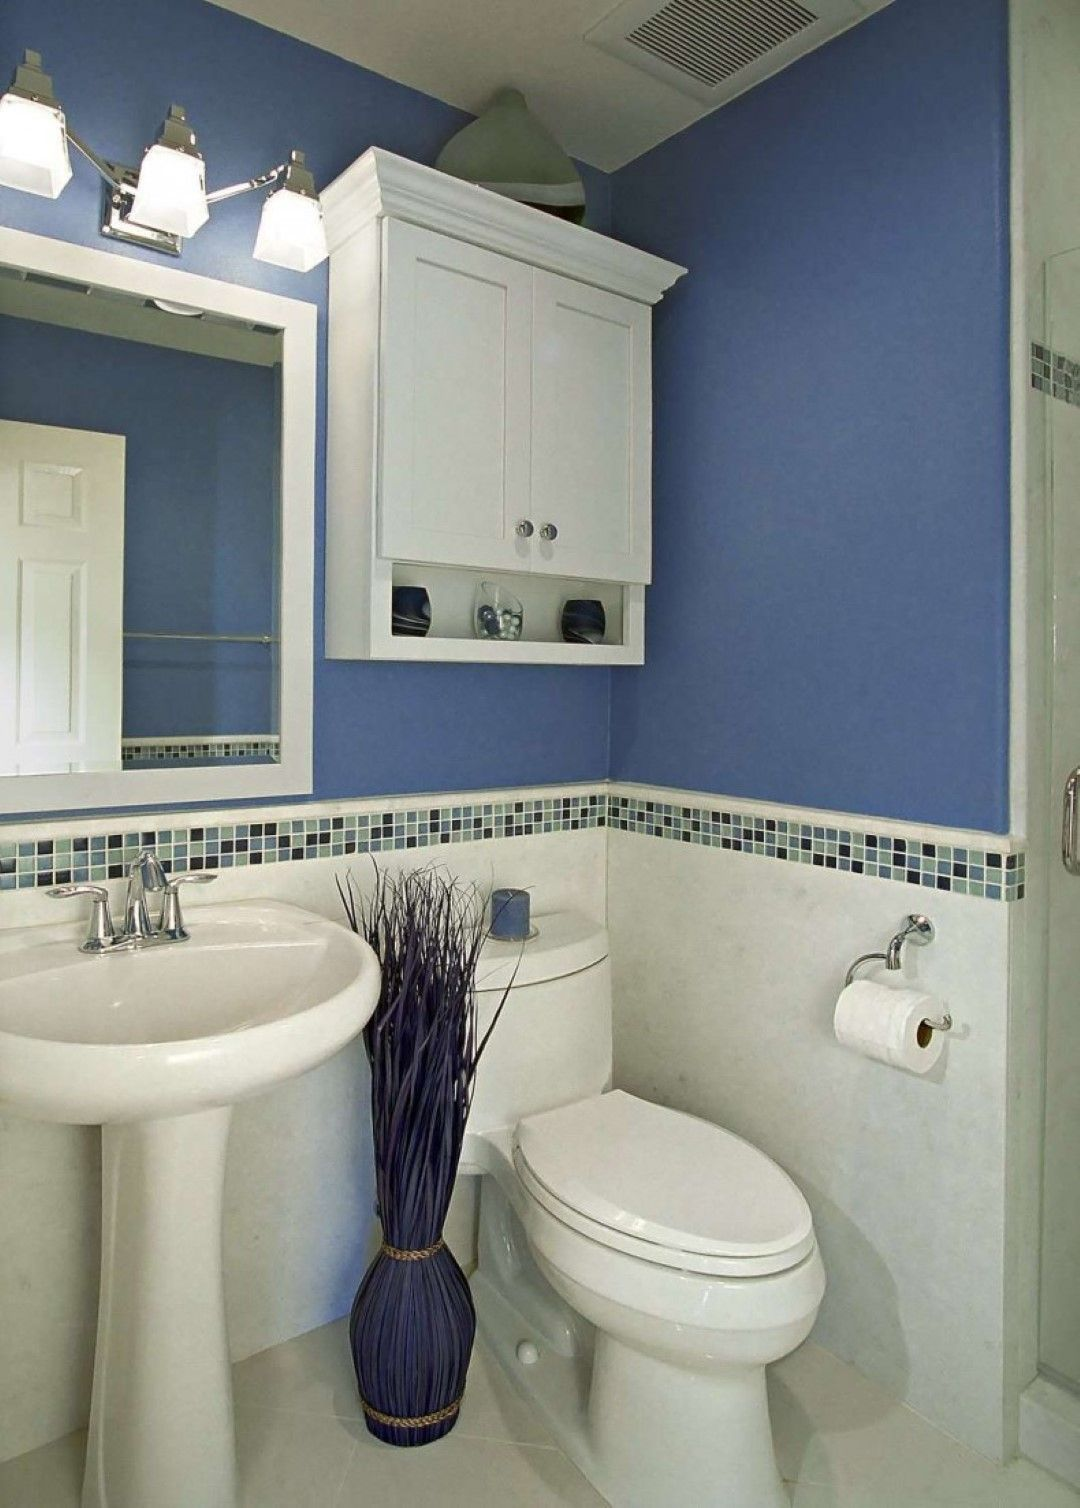 Bathroom, Mosaic Backsplash Tile Idea Feat Stylish Blue Bathroom And Pedestal  Sink With Smart Wall - Mayfair Pedestal Sink For The Home Pinterest Pedestal